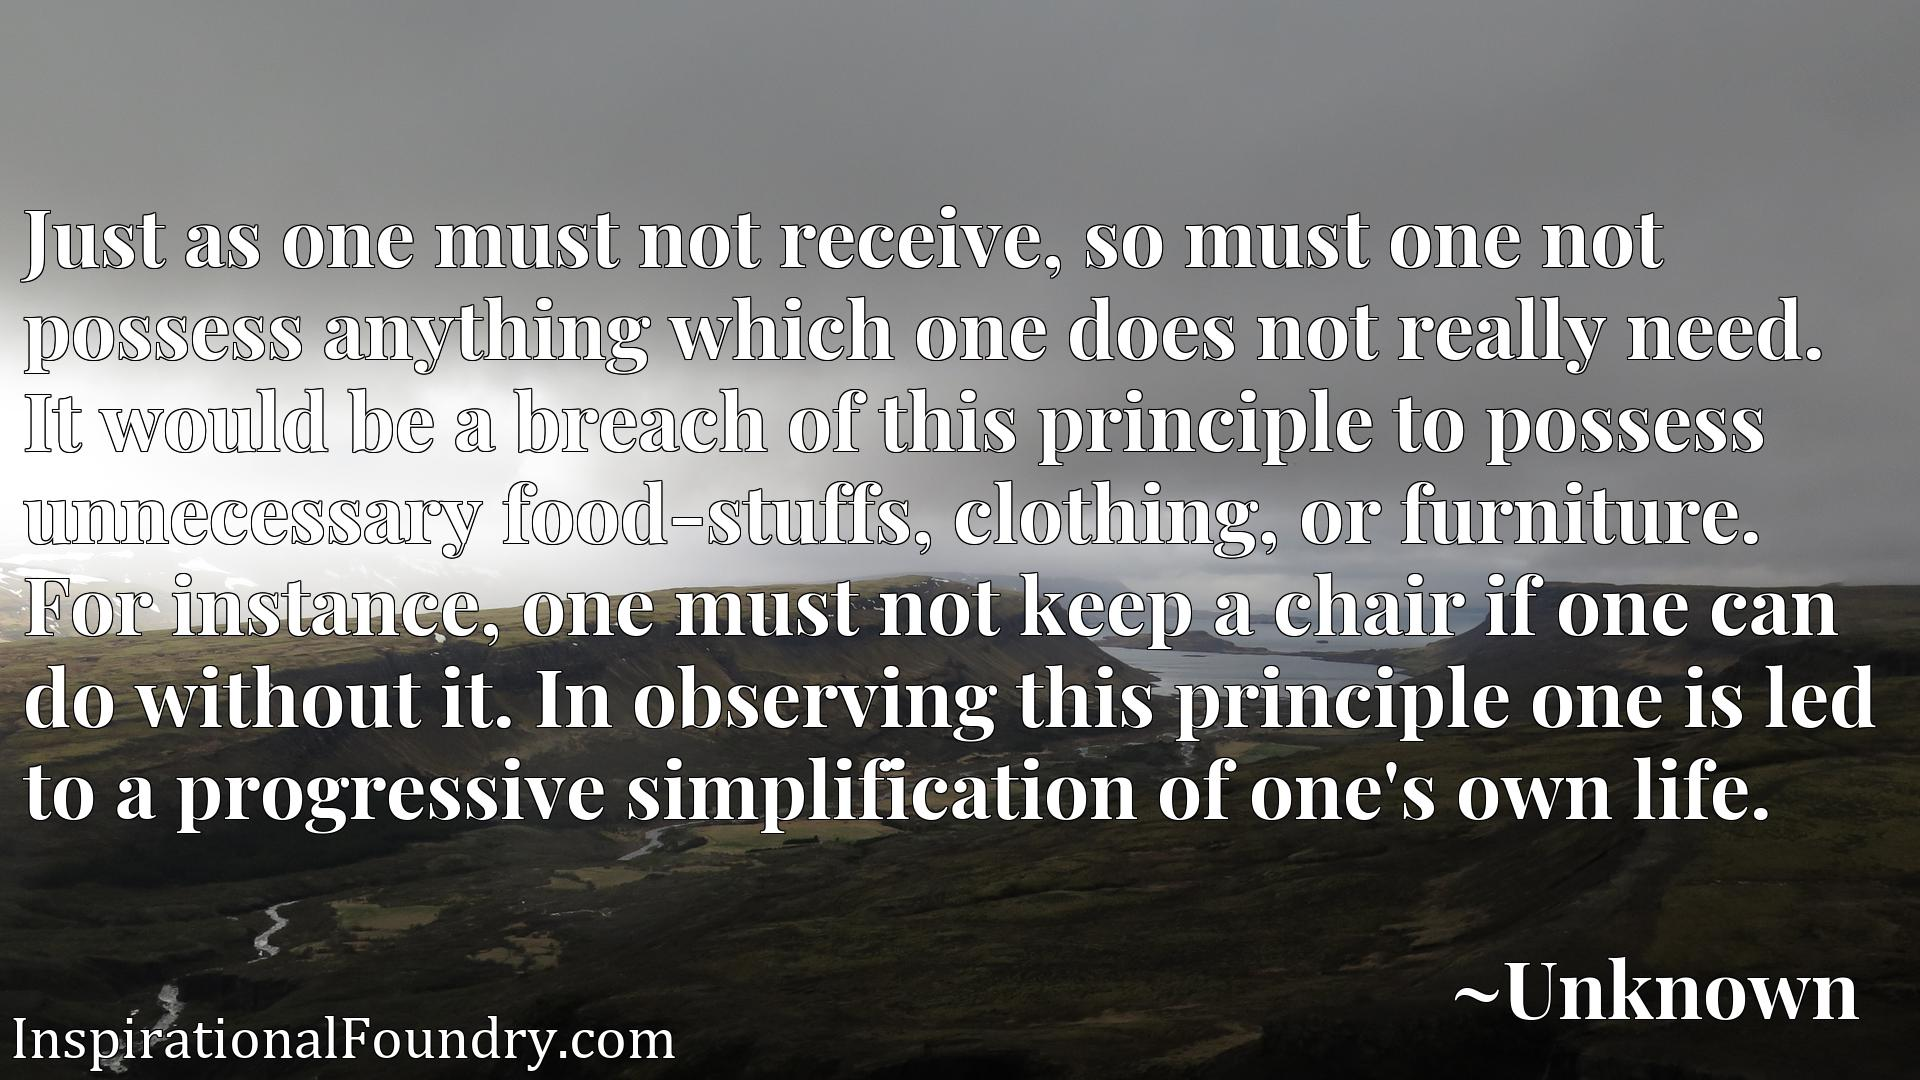 Quote Picture :Just as one must not receive, so must one not possess anything which one does not really need. It would be a breach of this principle to possess unnecessary food-stuffs, clothing, or furniture. For instance, one must not keep a chair if one can do without it. In observing this principle one is led to a progressive simplification of one's own life.